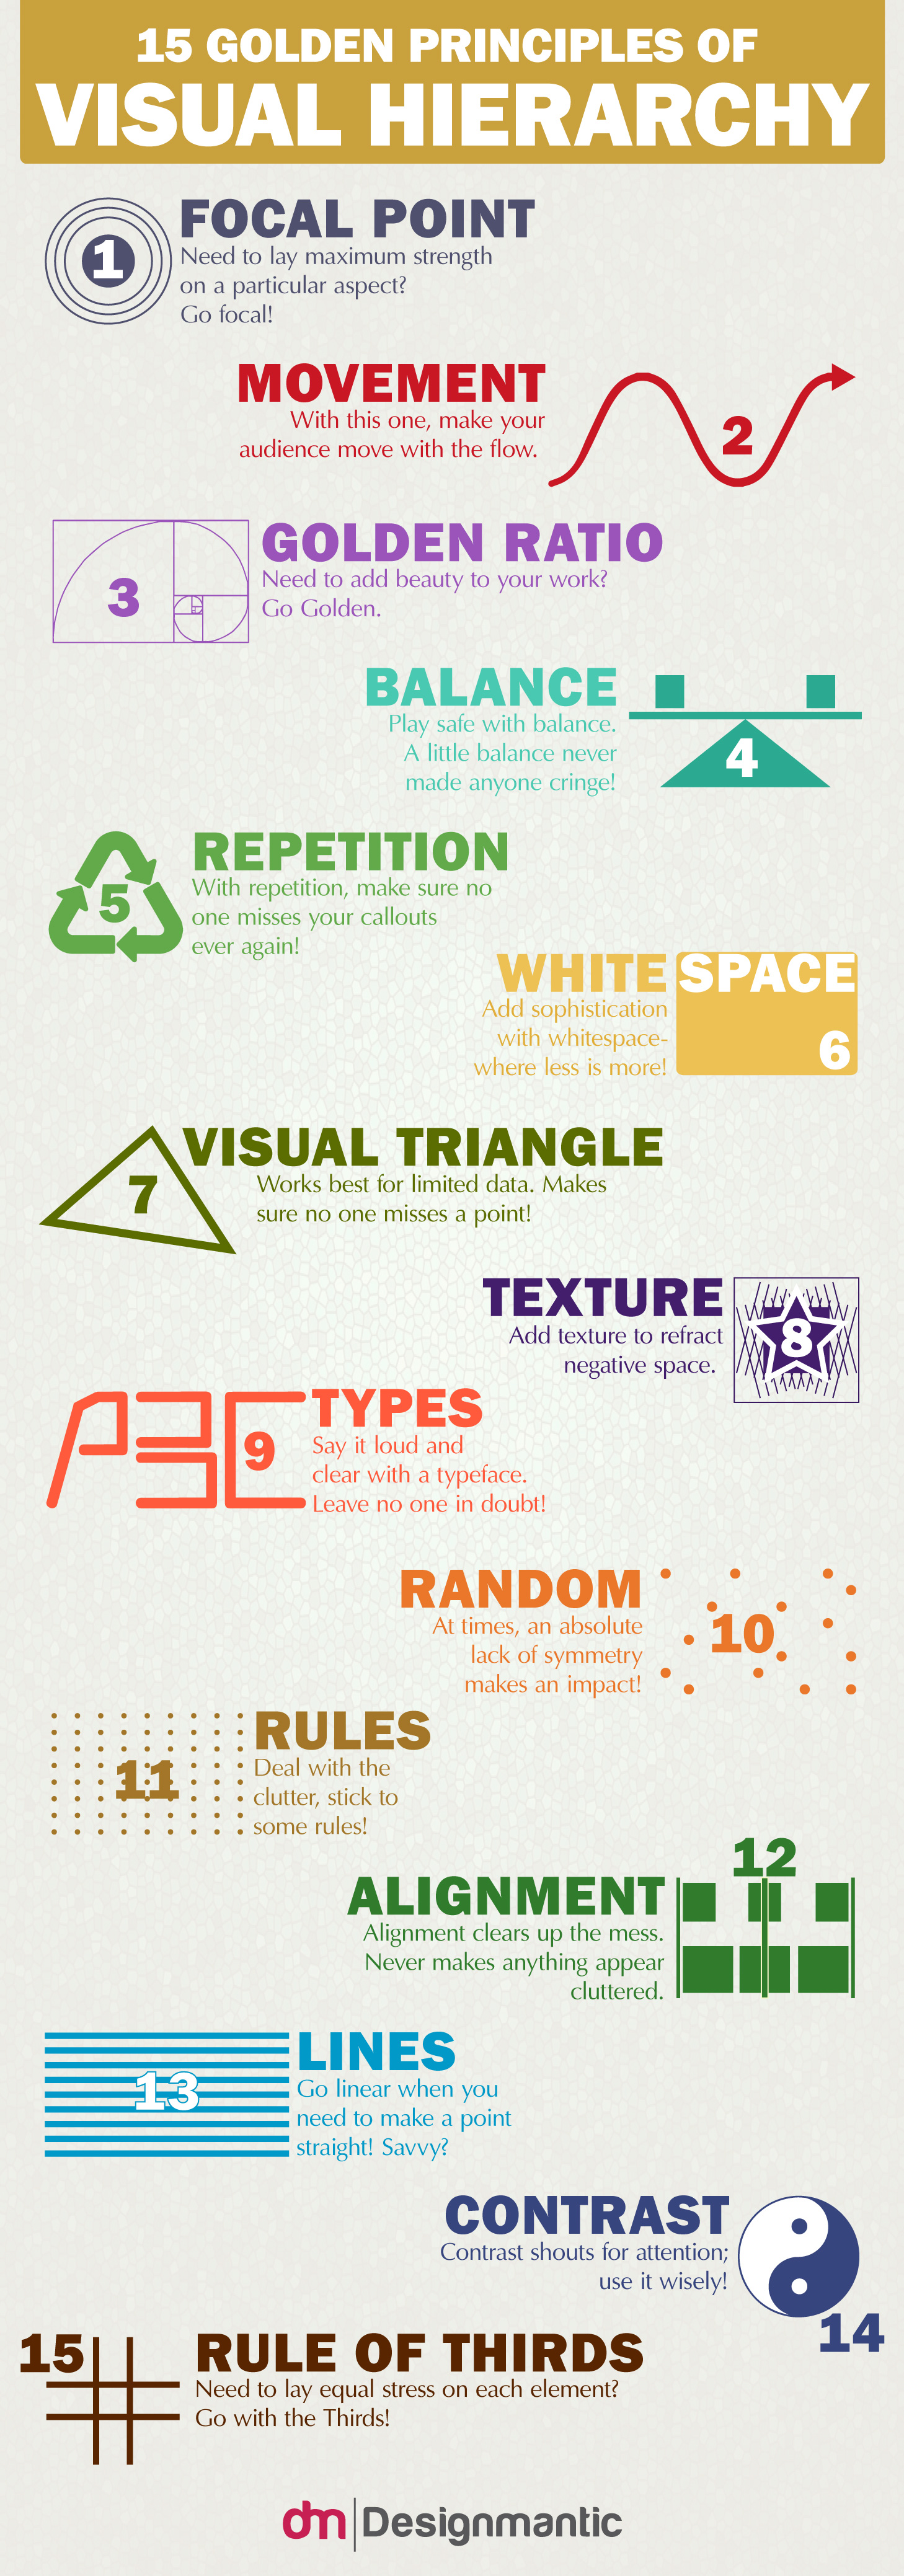 Golden-Rules-of-Visual-Hierarchy